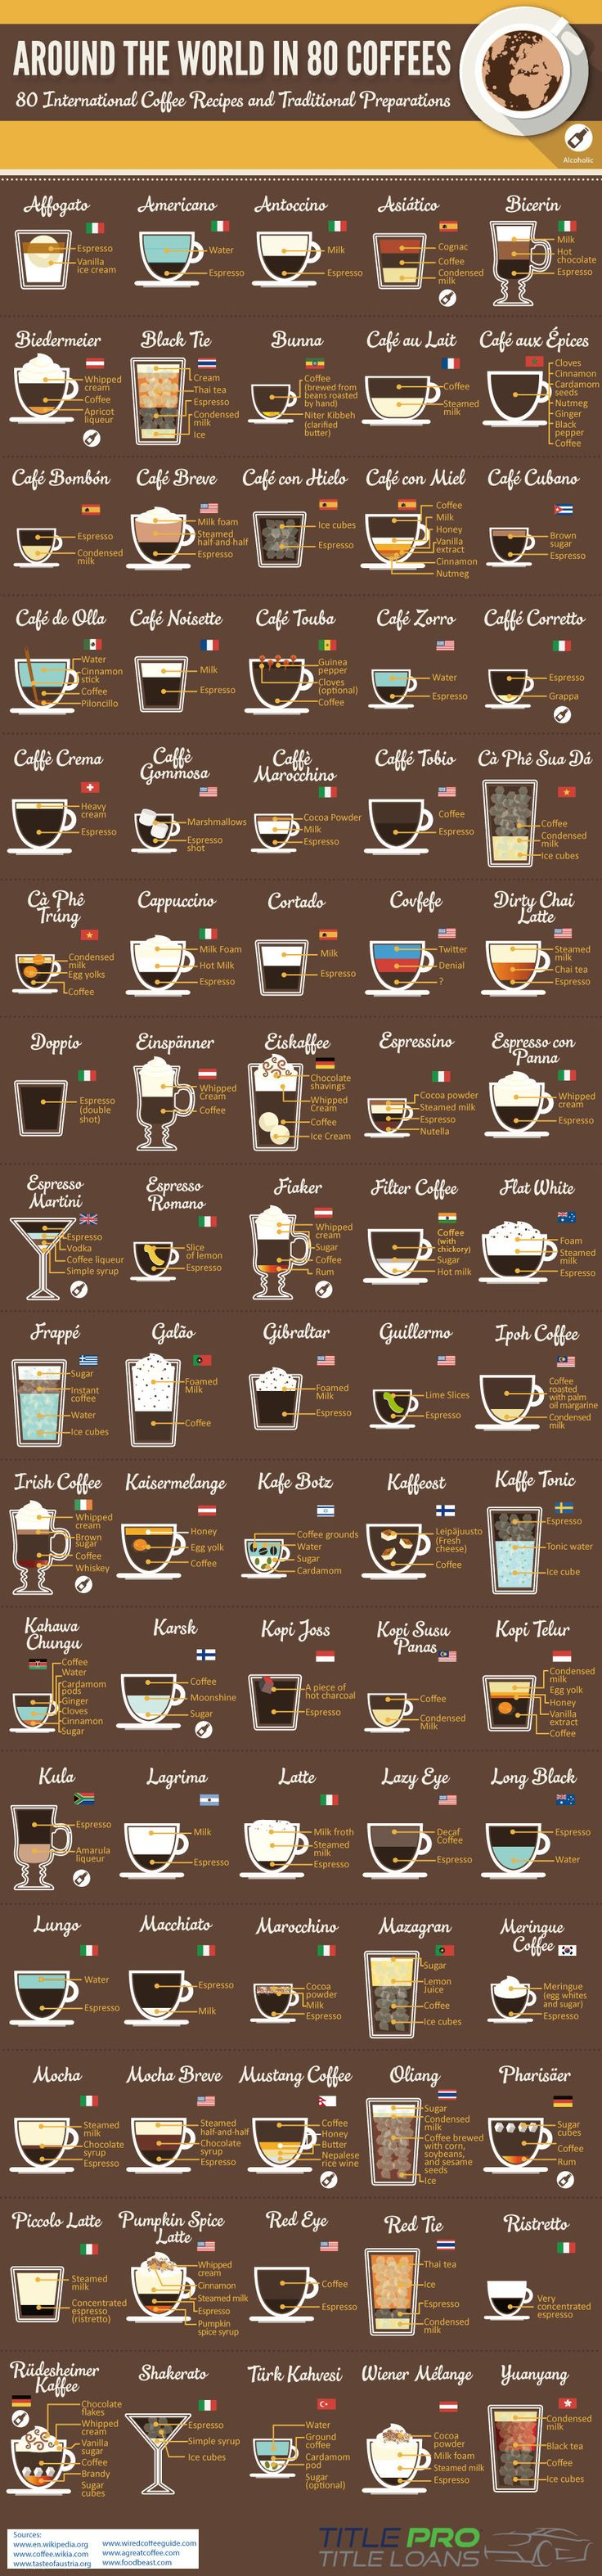 Around The World In 80 Coffees #Infographic #Coffee #Food